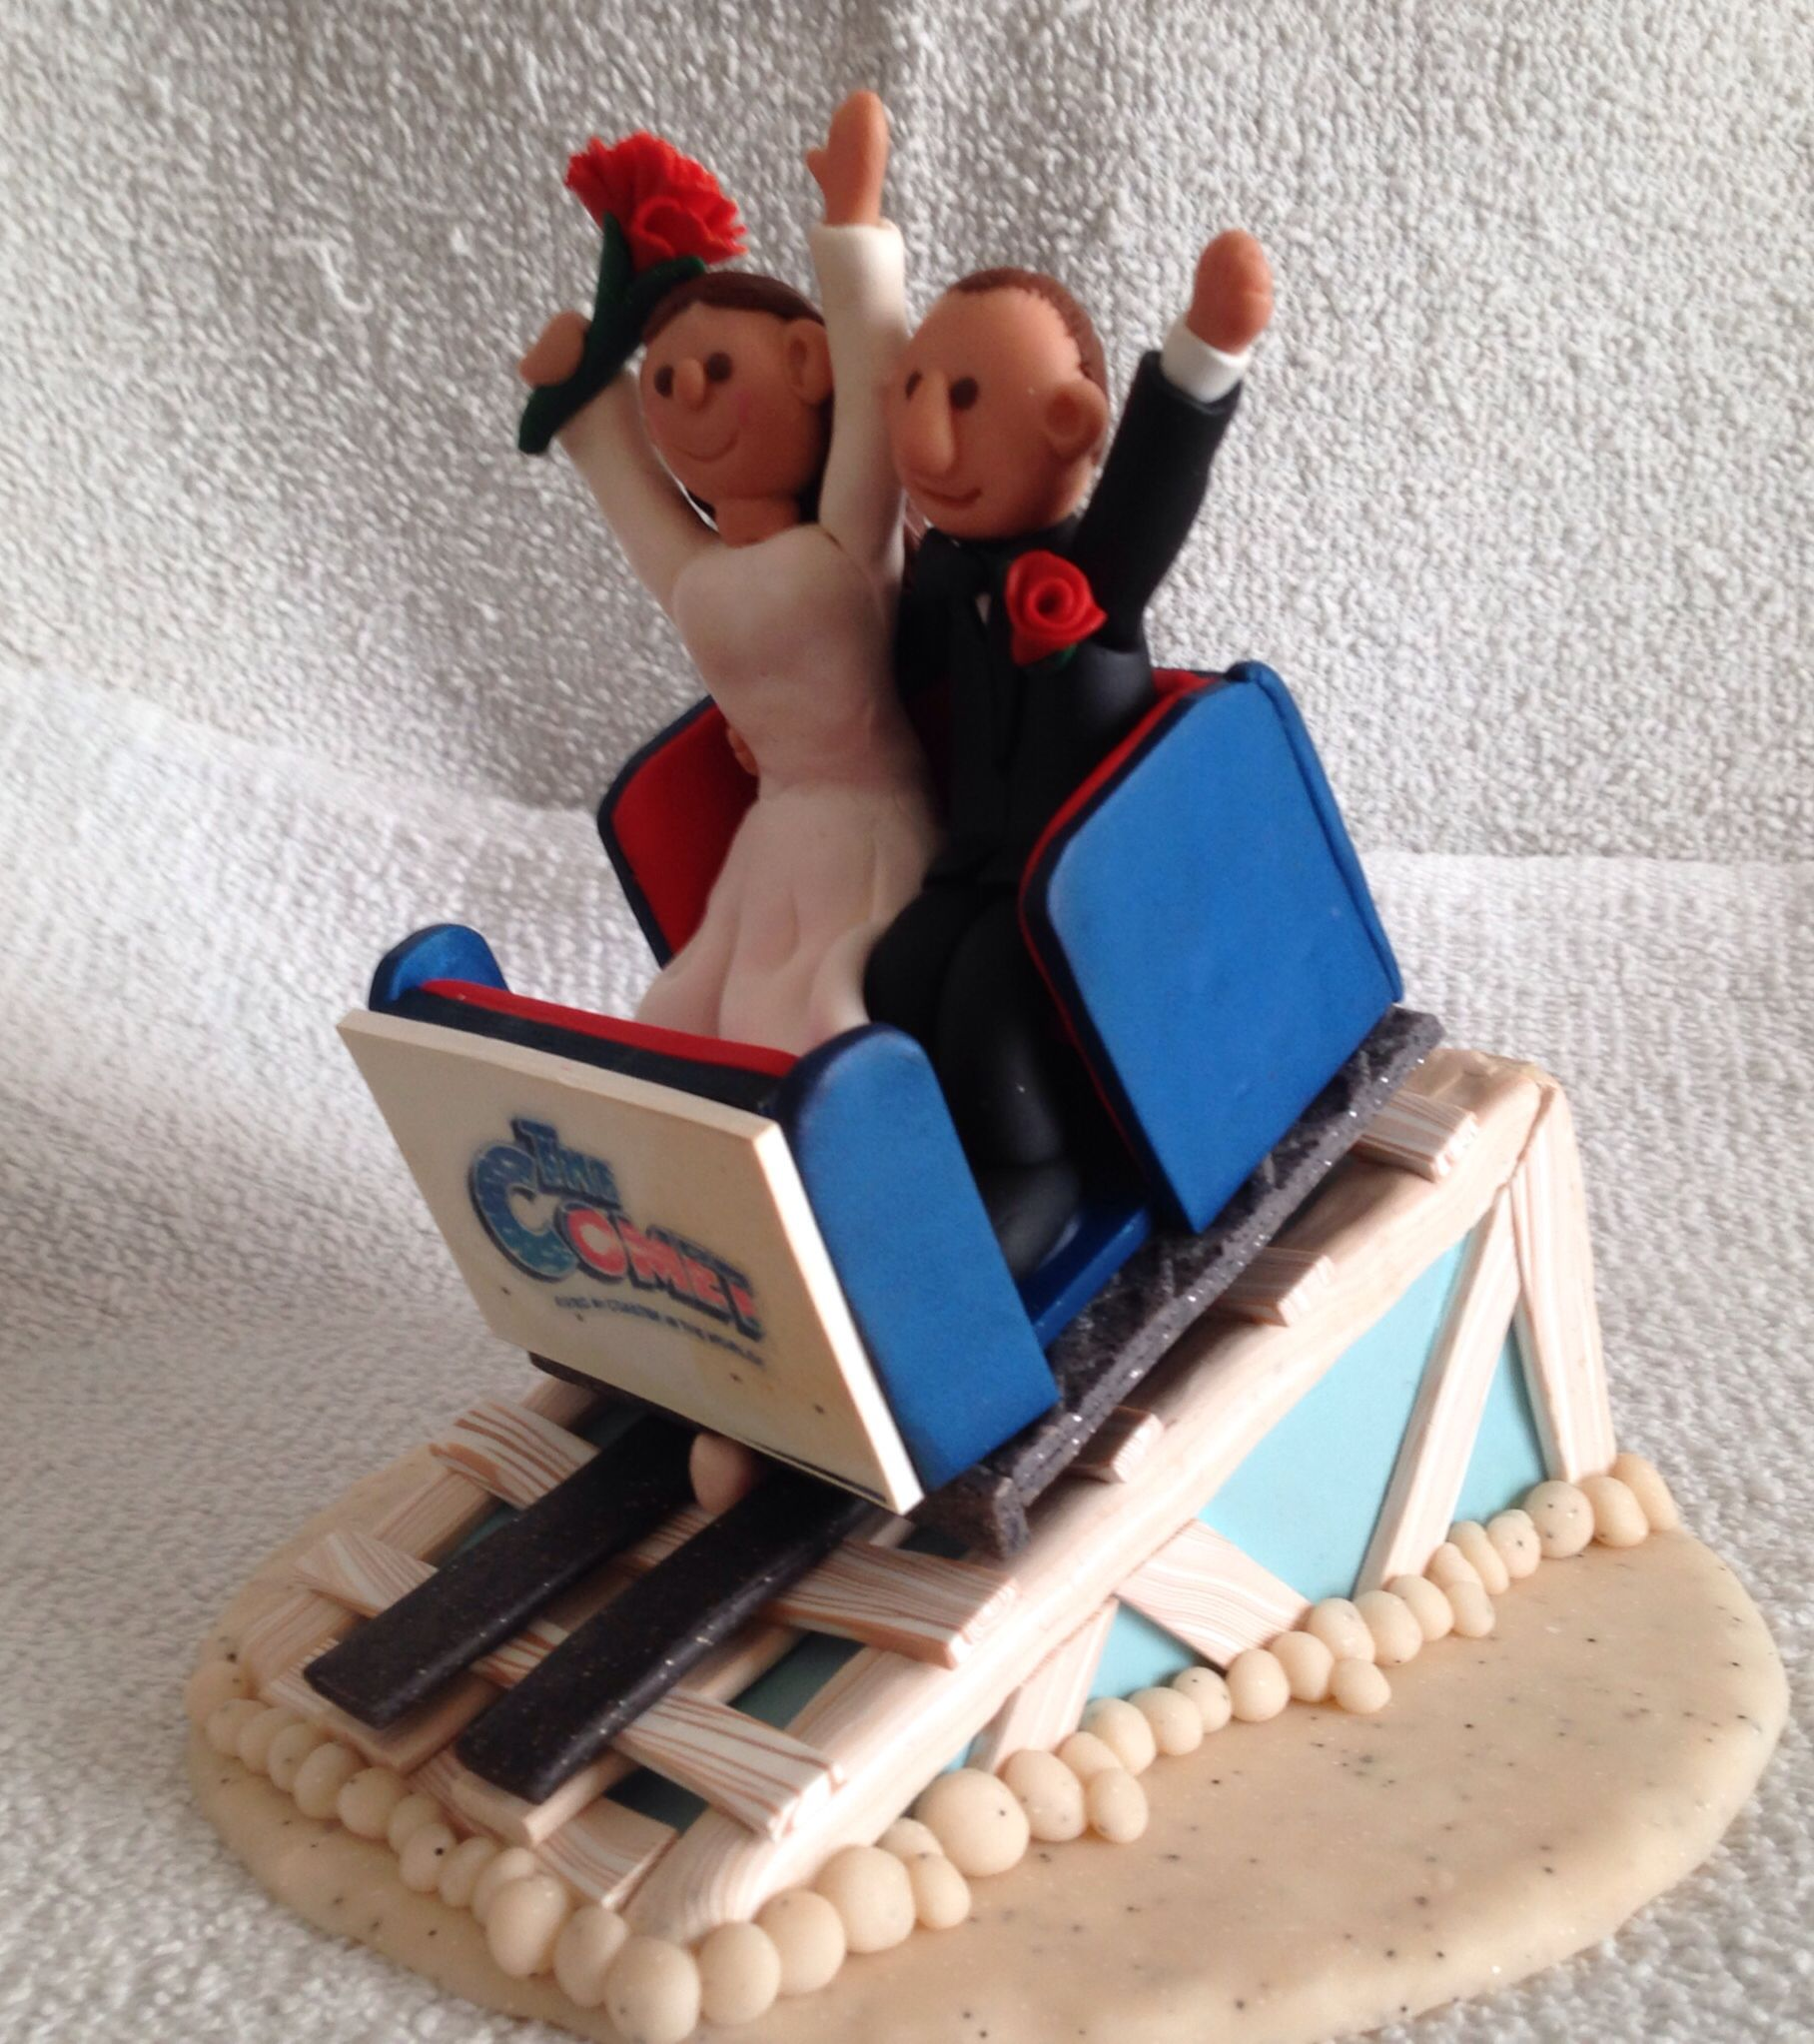 This One Is My Newest Creation The Couple S First Date Was On A Roller Coaster At The Great Escape And Roller Coaster Cake Wedding Cake Toppers Creative Cakes